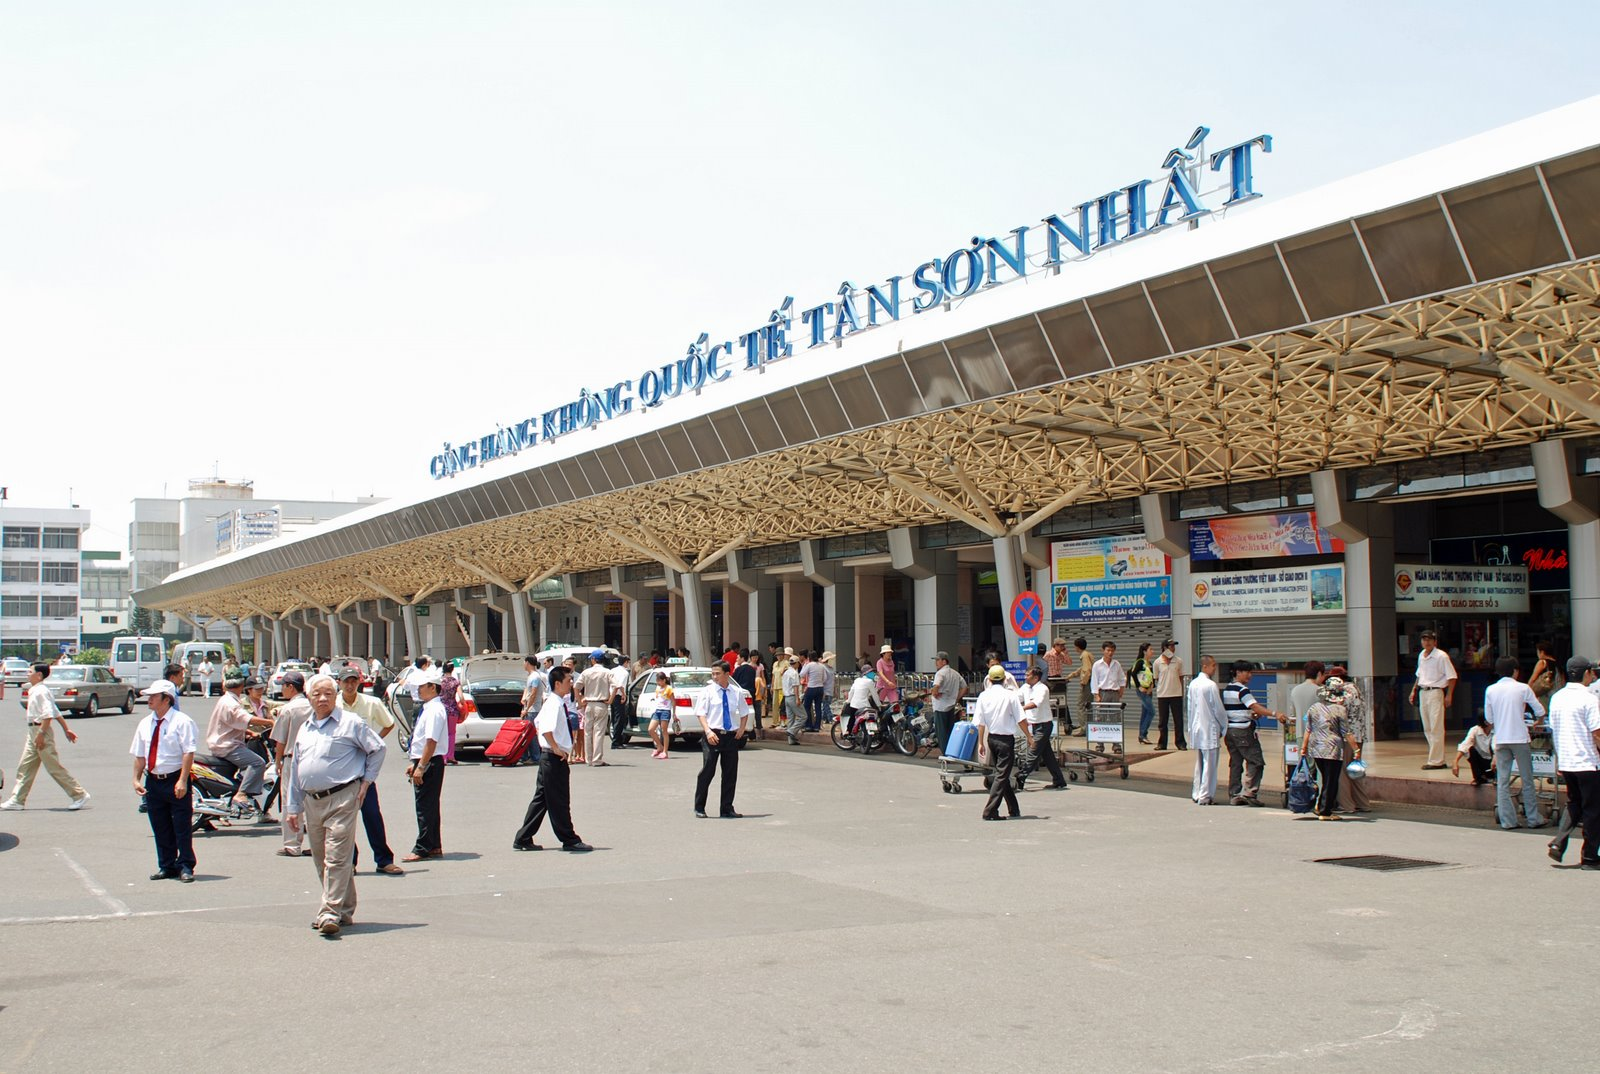 Tan Son Nhat international airport- where you depart from Ho Chi Minh city to Halong Bay